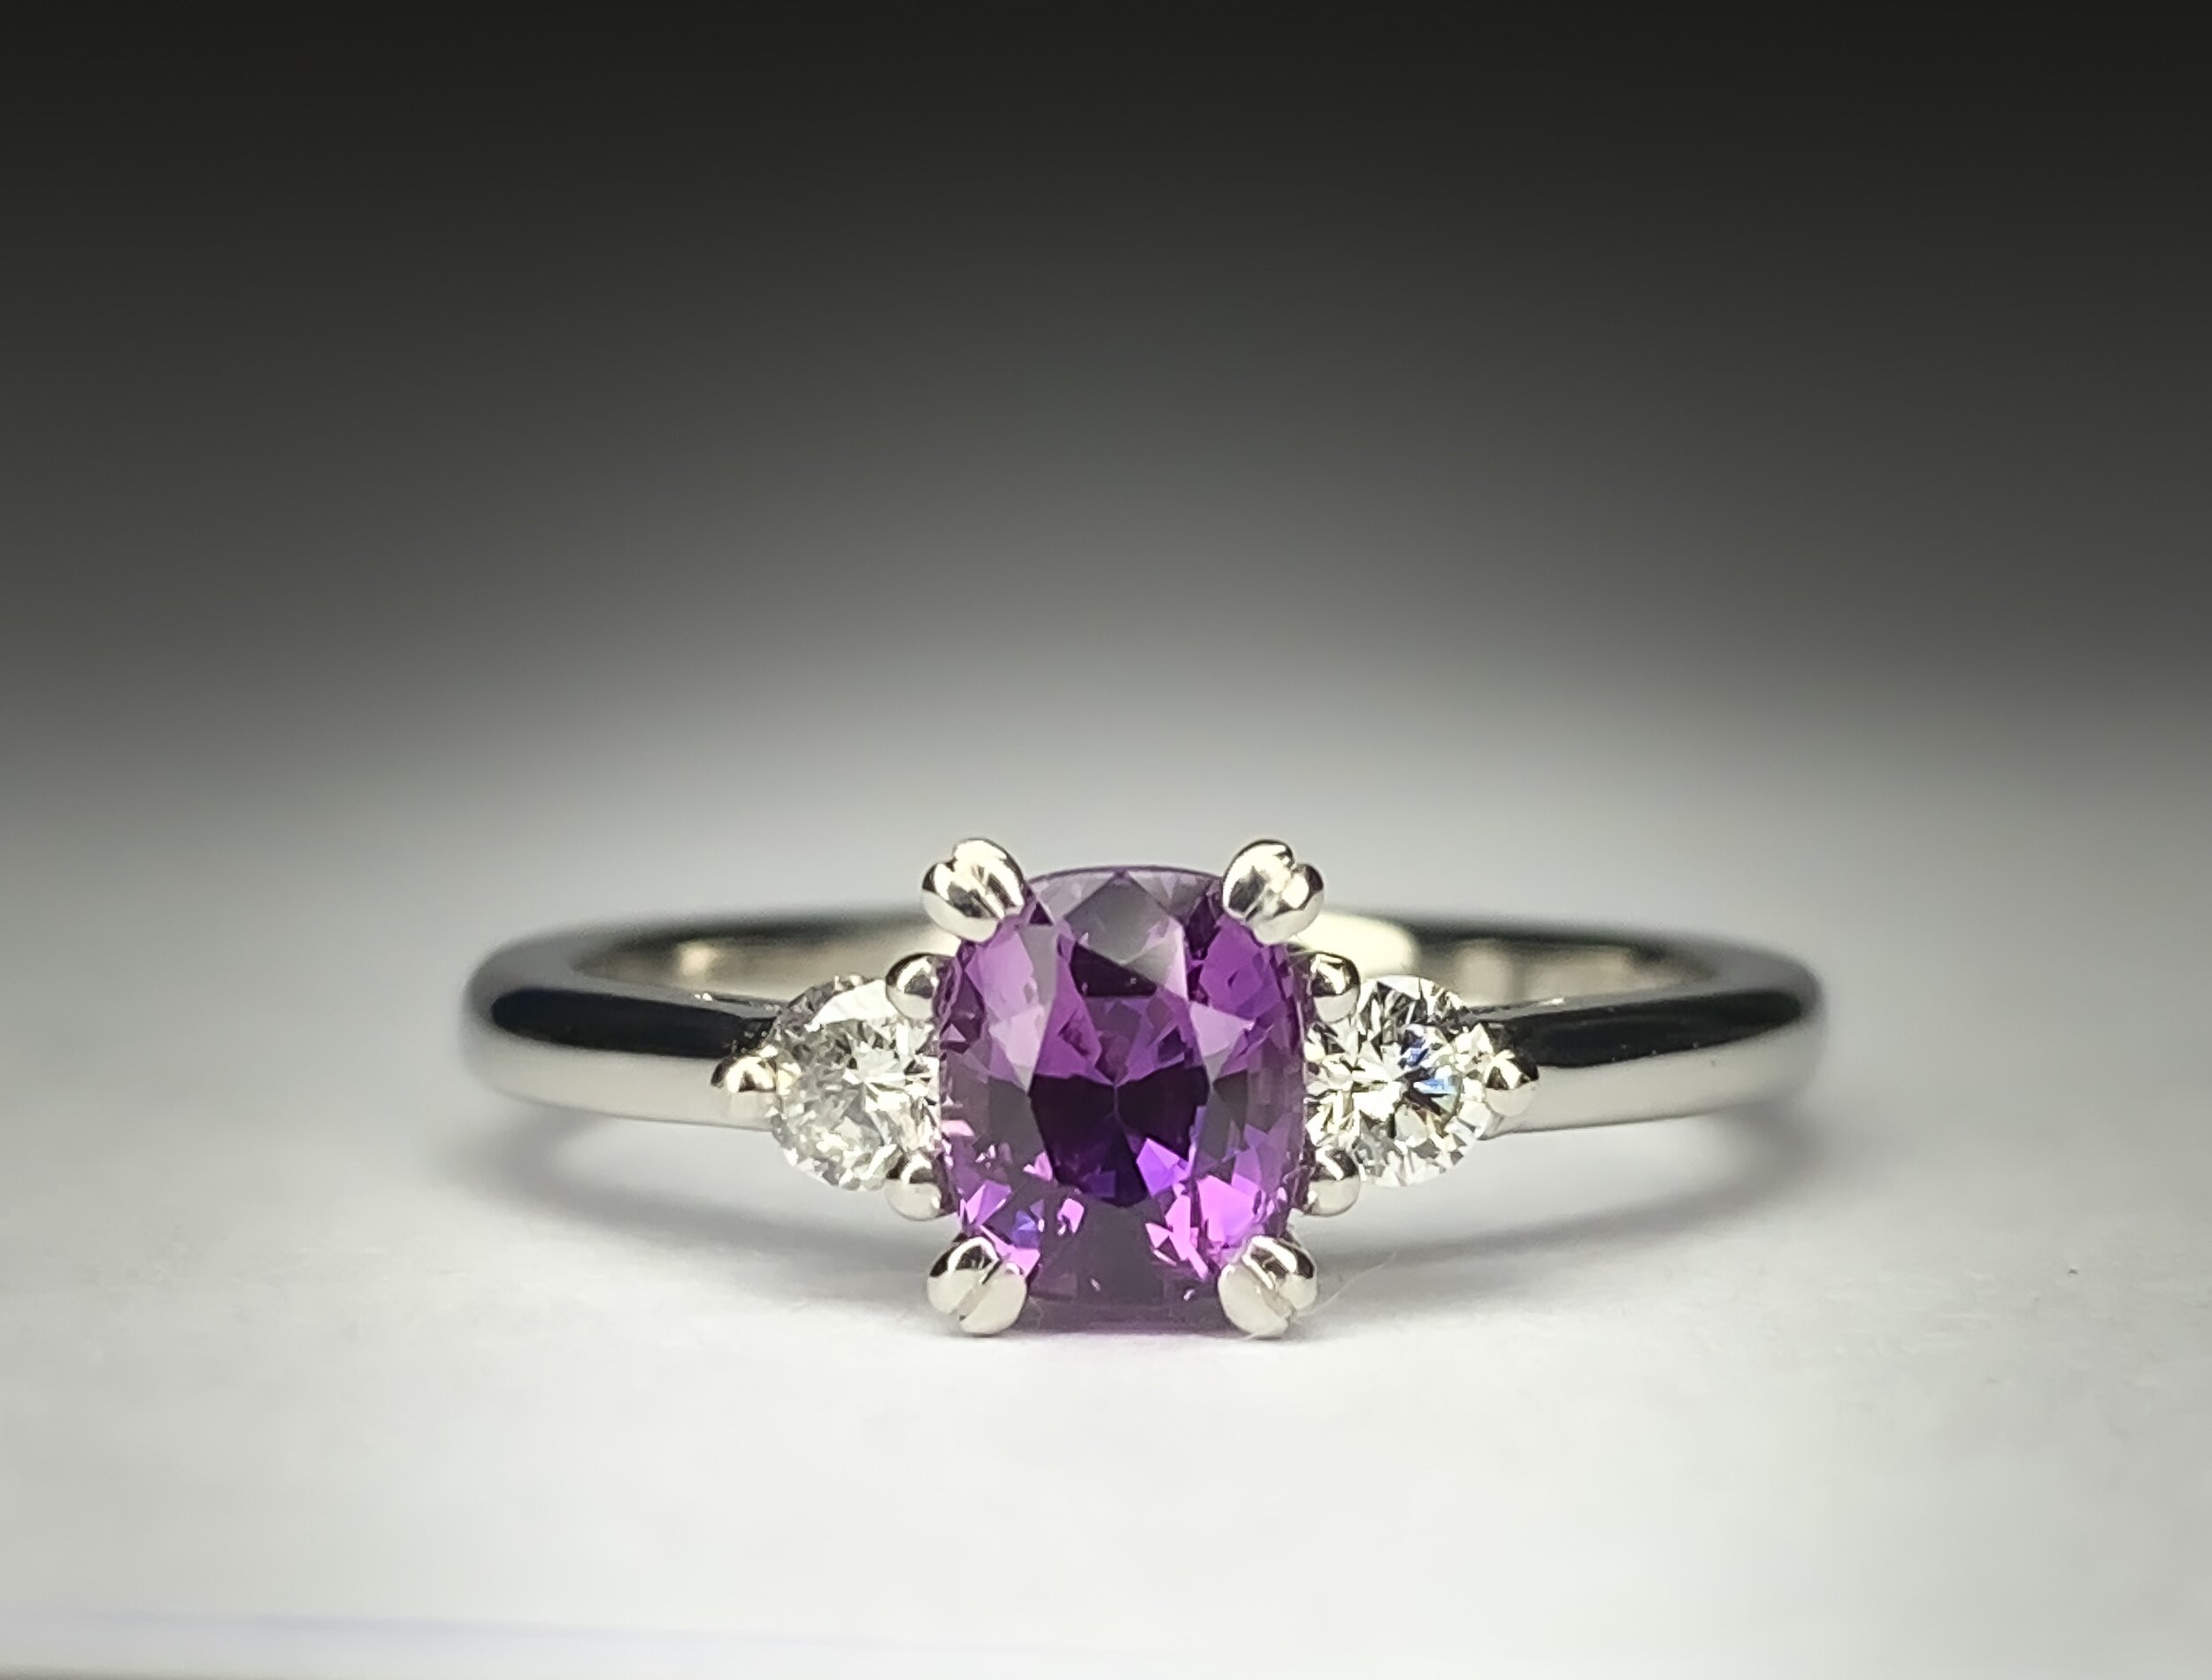 Platinum mounted diamond and 0.95ct cushion cut purple sapphire claw set ring. Made in Chichester, England.